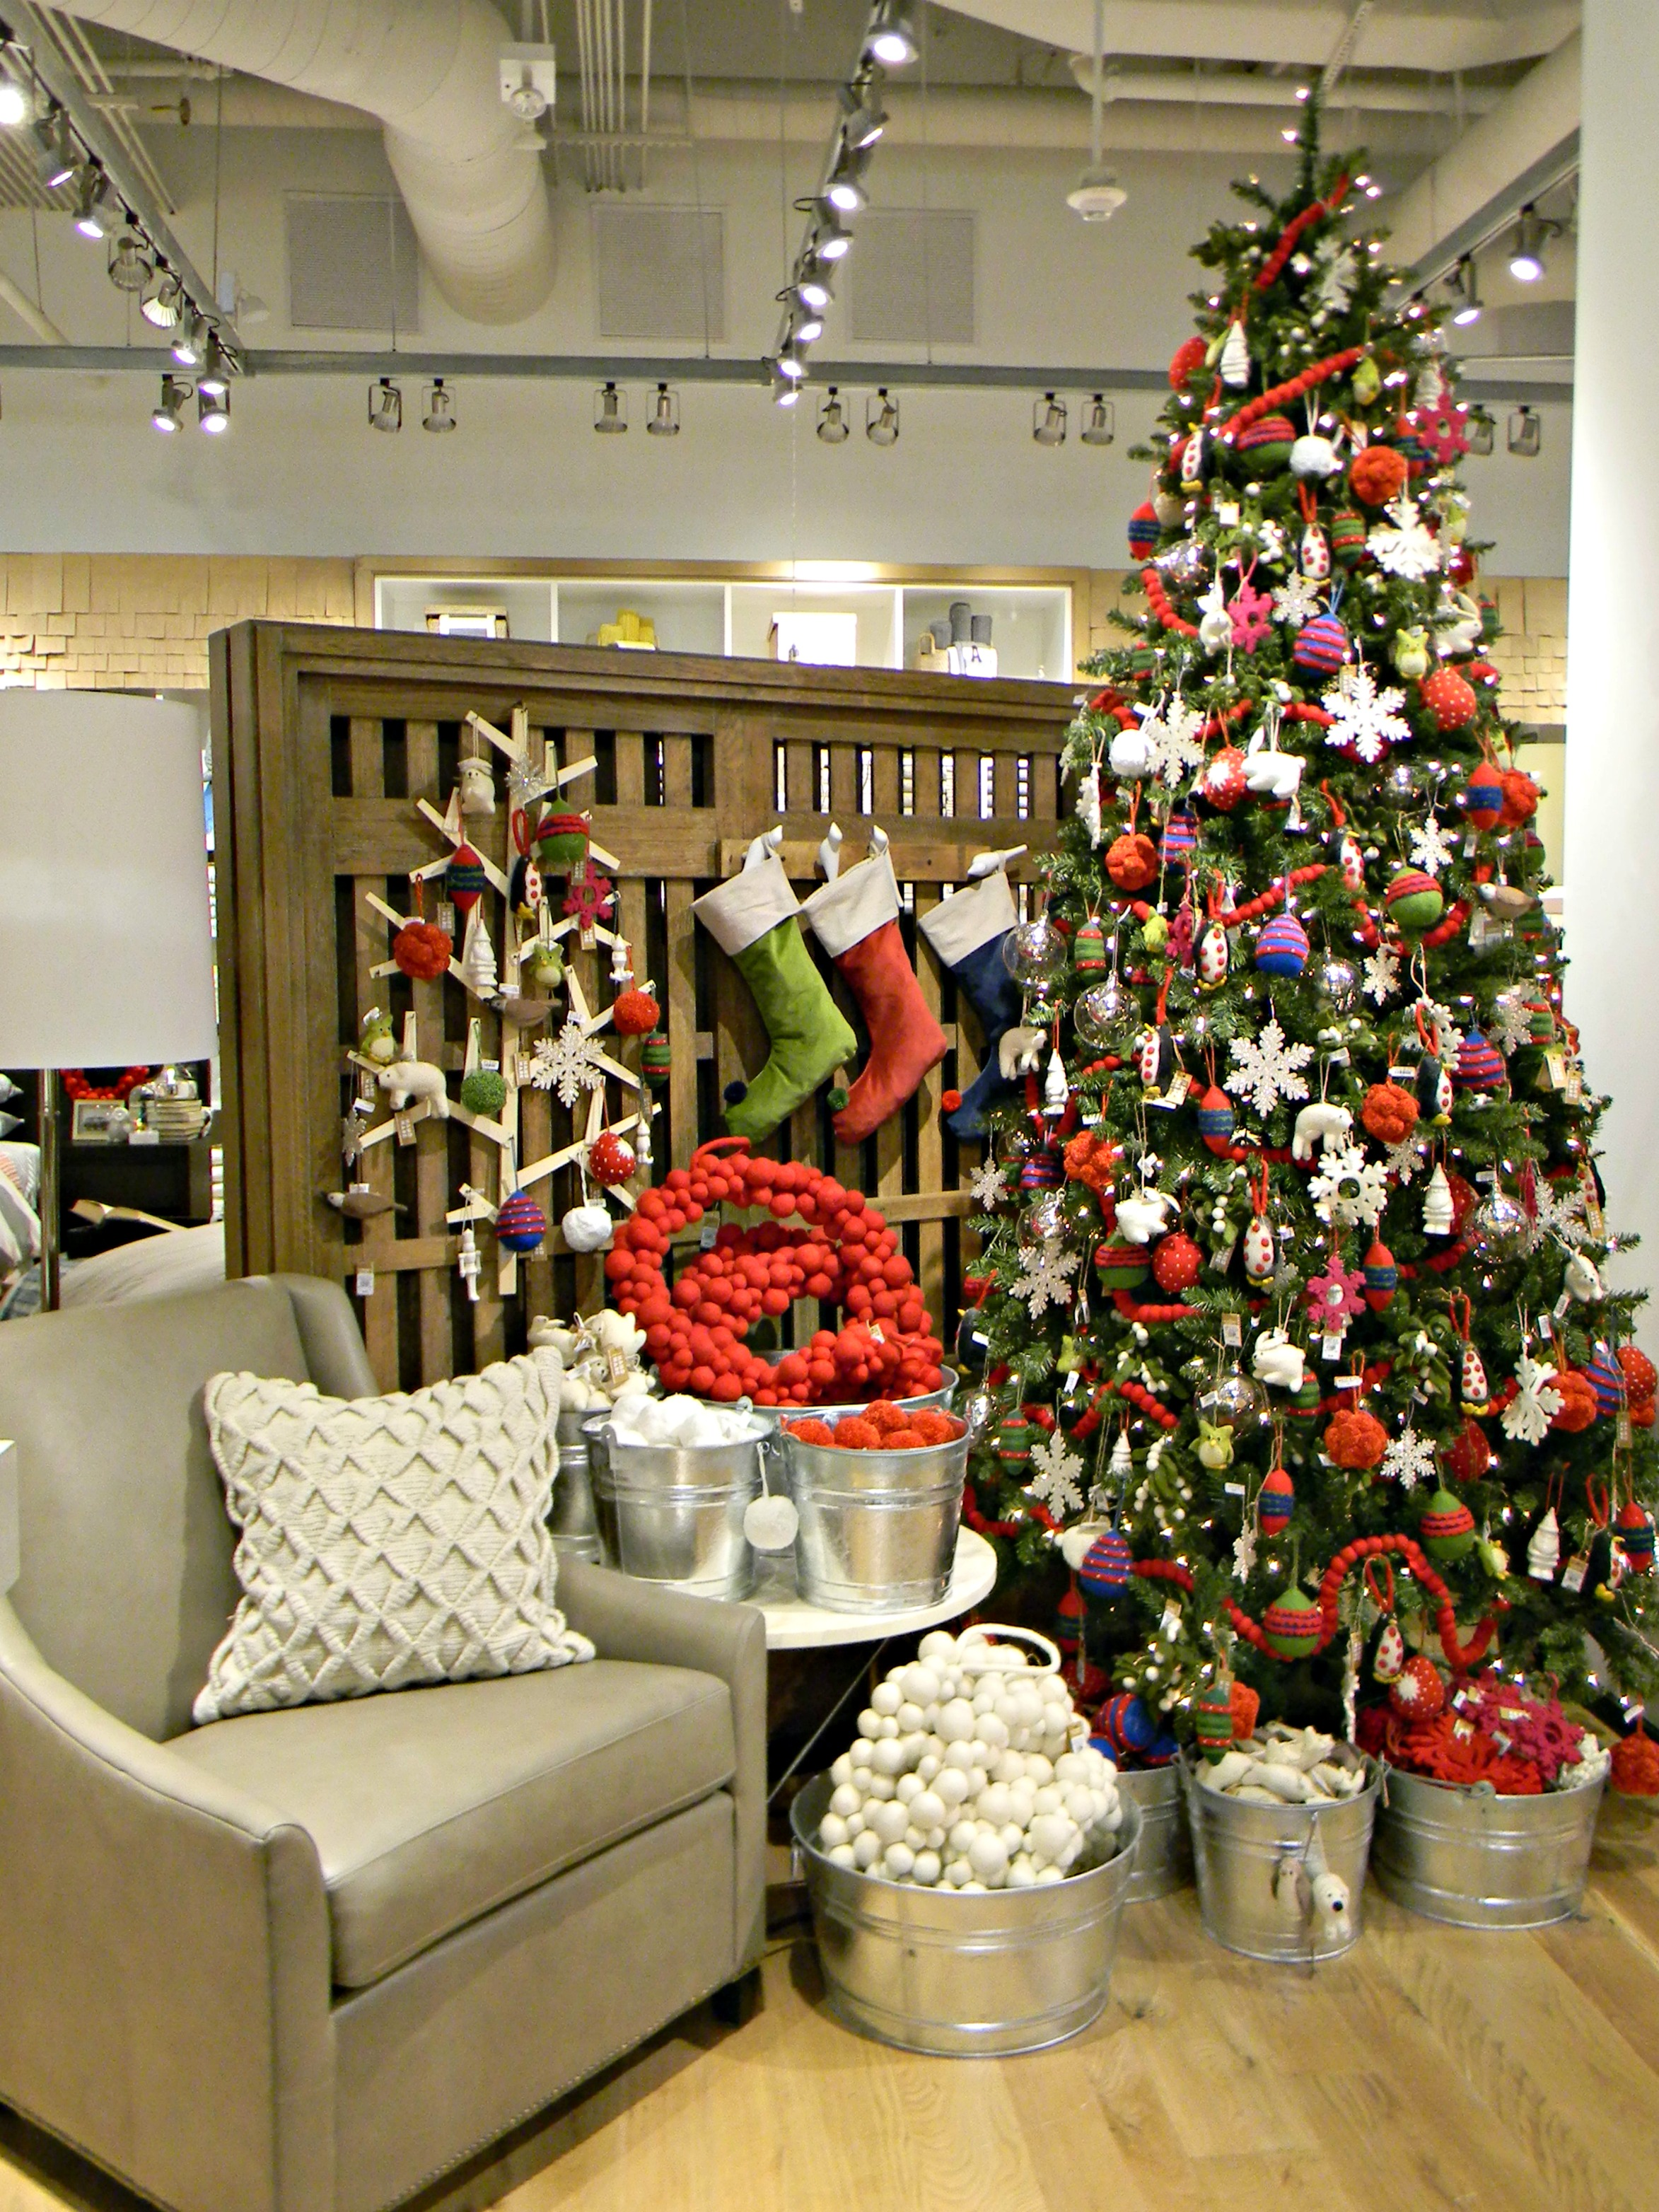 West Elm Christmas Display.West Elm 32 Organize And Decorate Everything